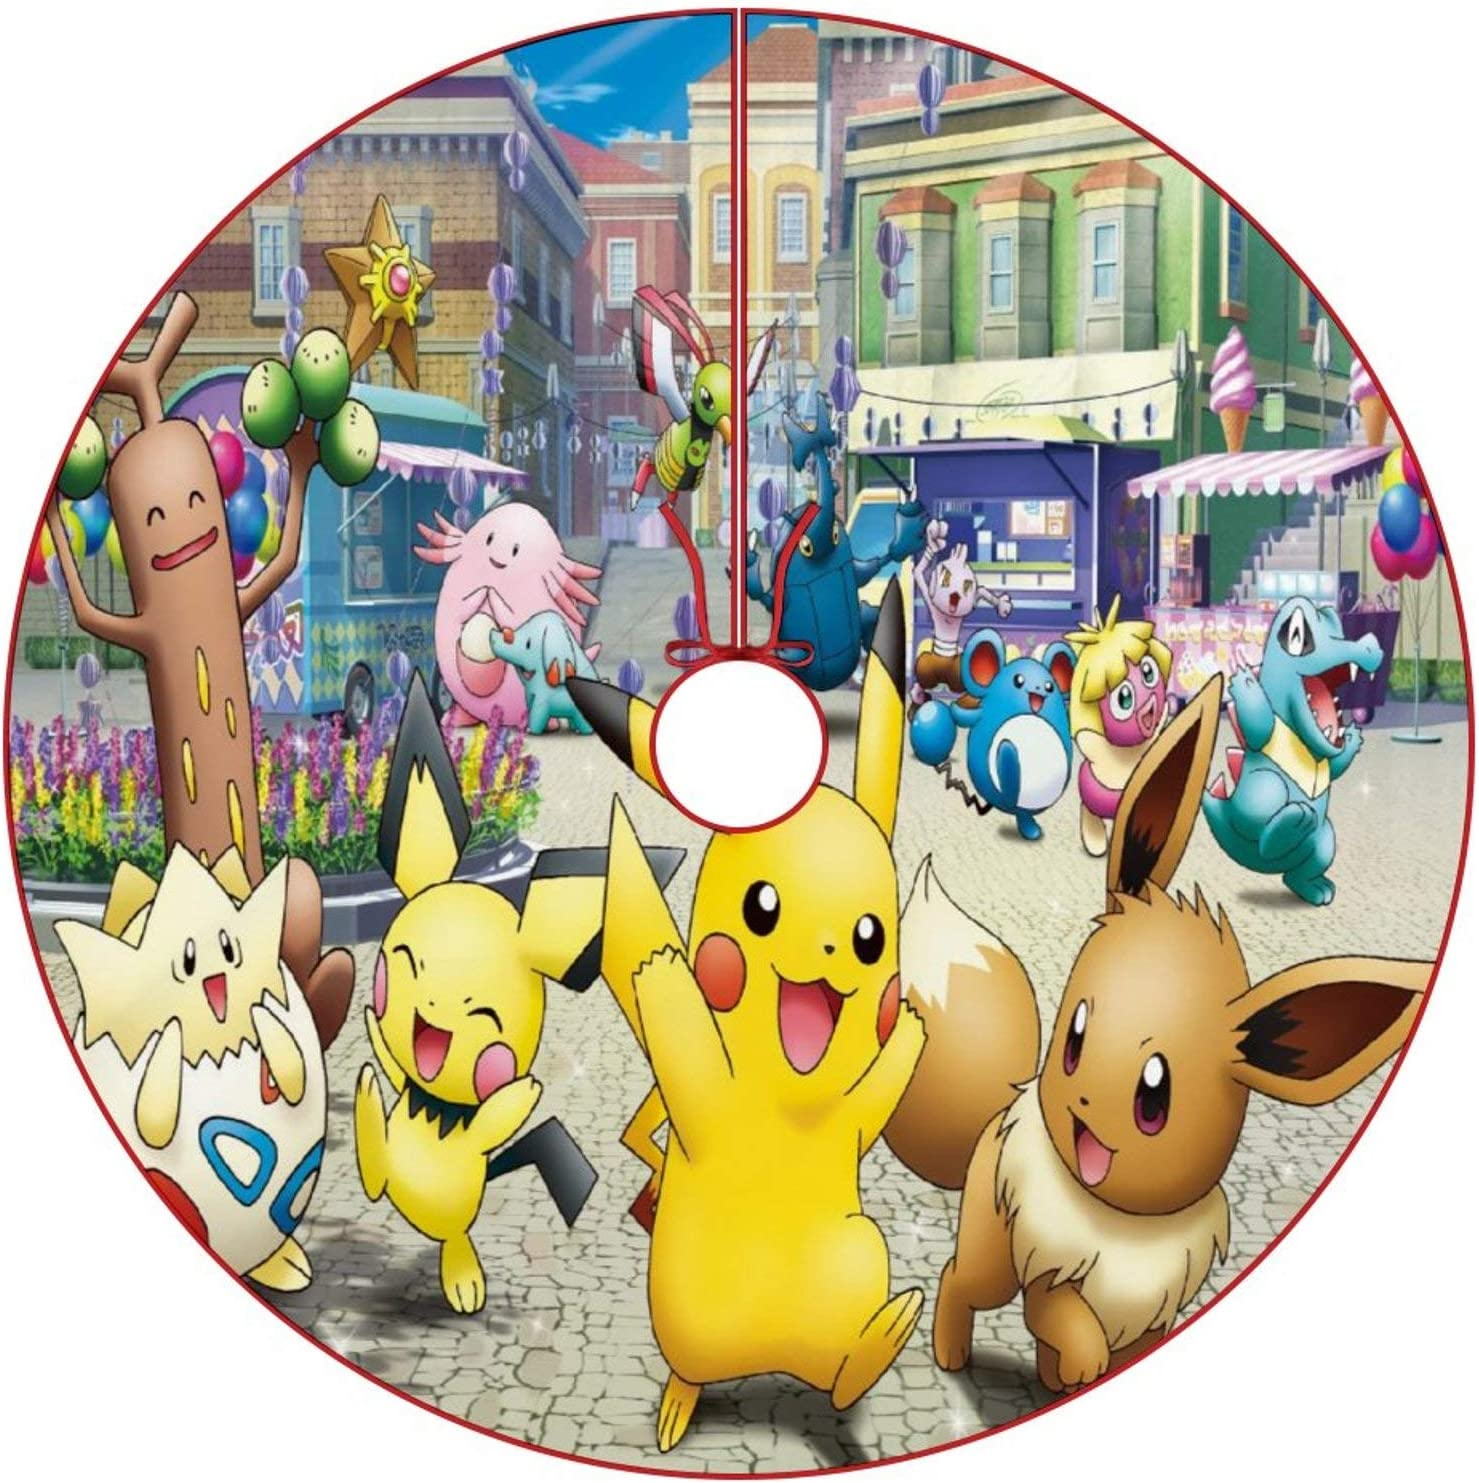 oobon Christmas Tree Skirt for Anime Fans,Pikachu Pichu Eevee Togepi, Xmas Holiday Party Ornament Supplies Large Santa Tree Mat Decor for Gift and Decoration, 30 inches